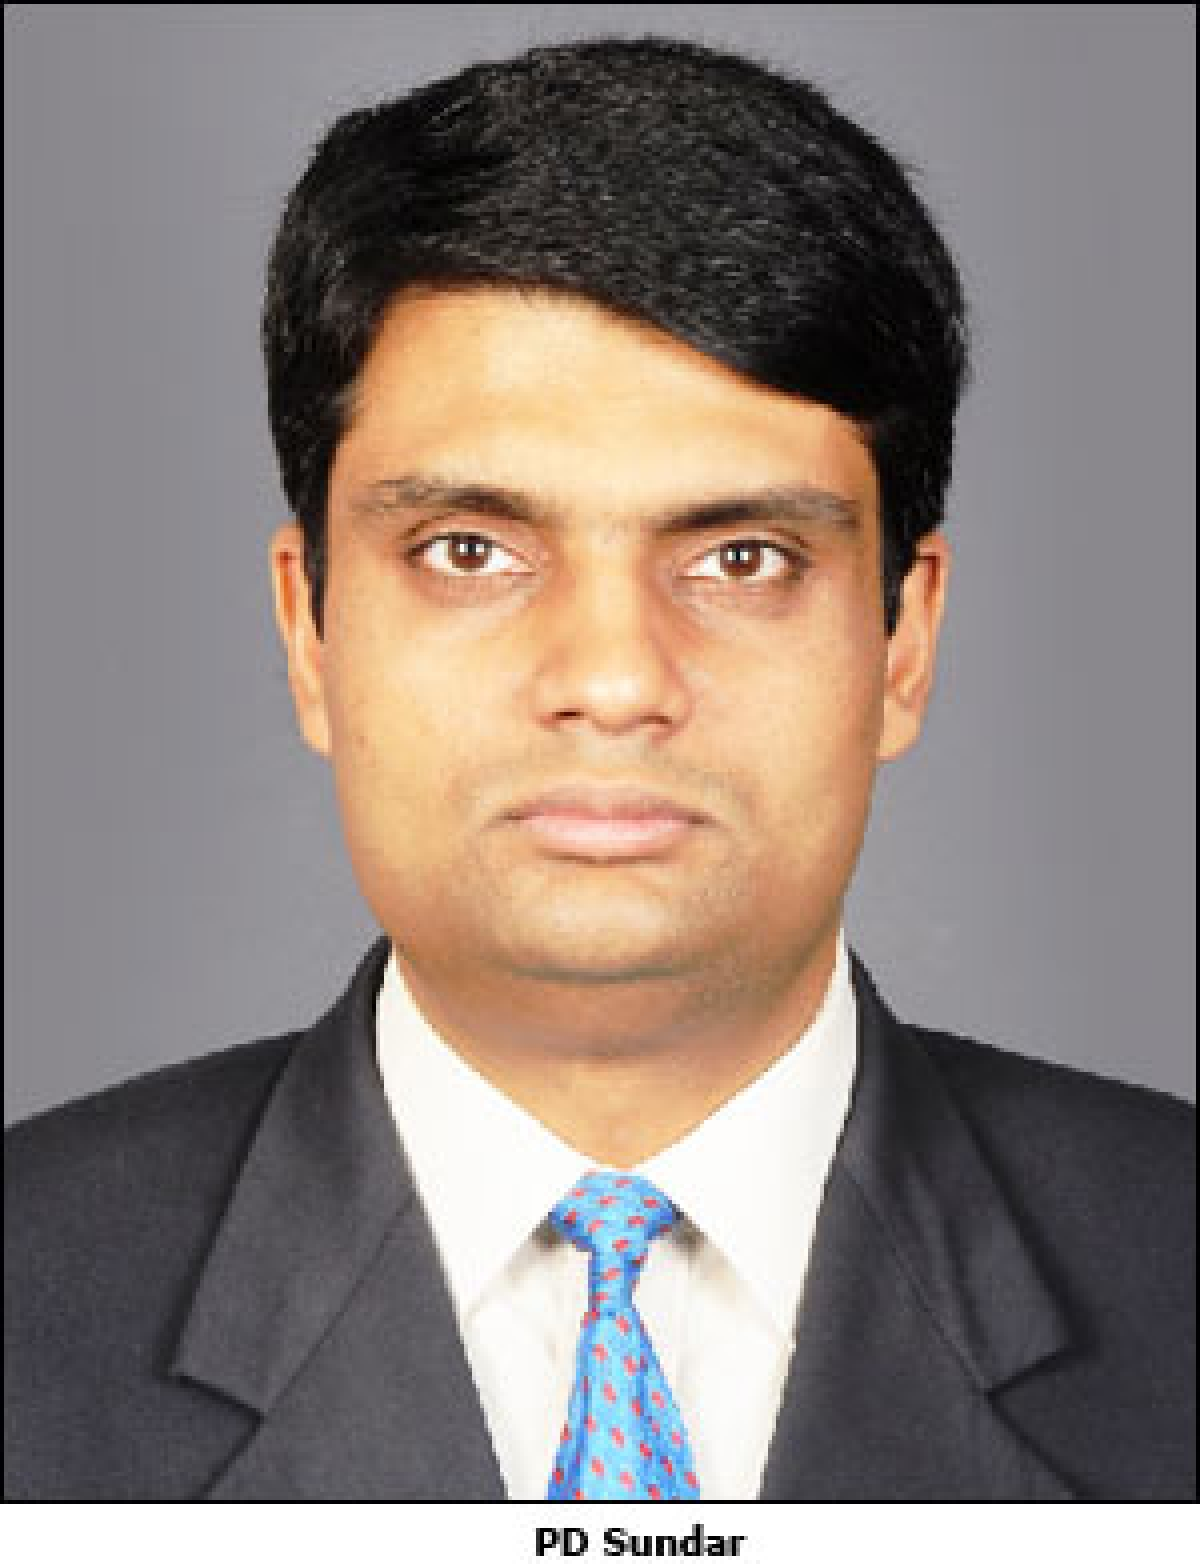 Quikr appoints PD Sundar as head of QuikrServices